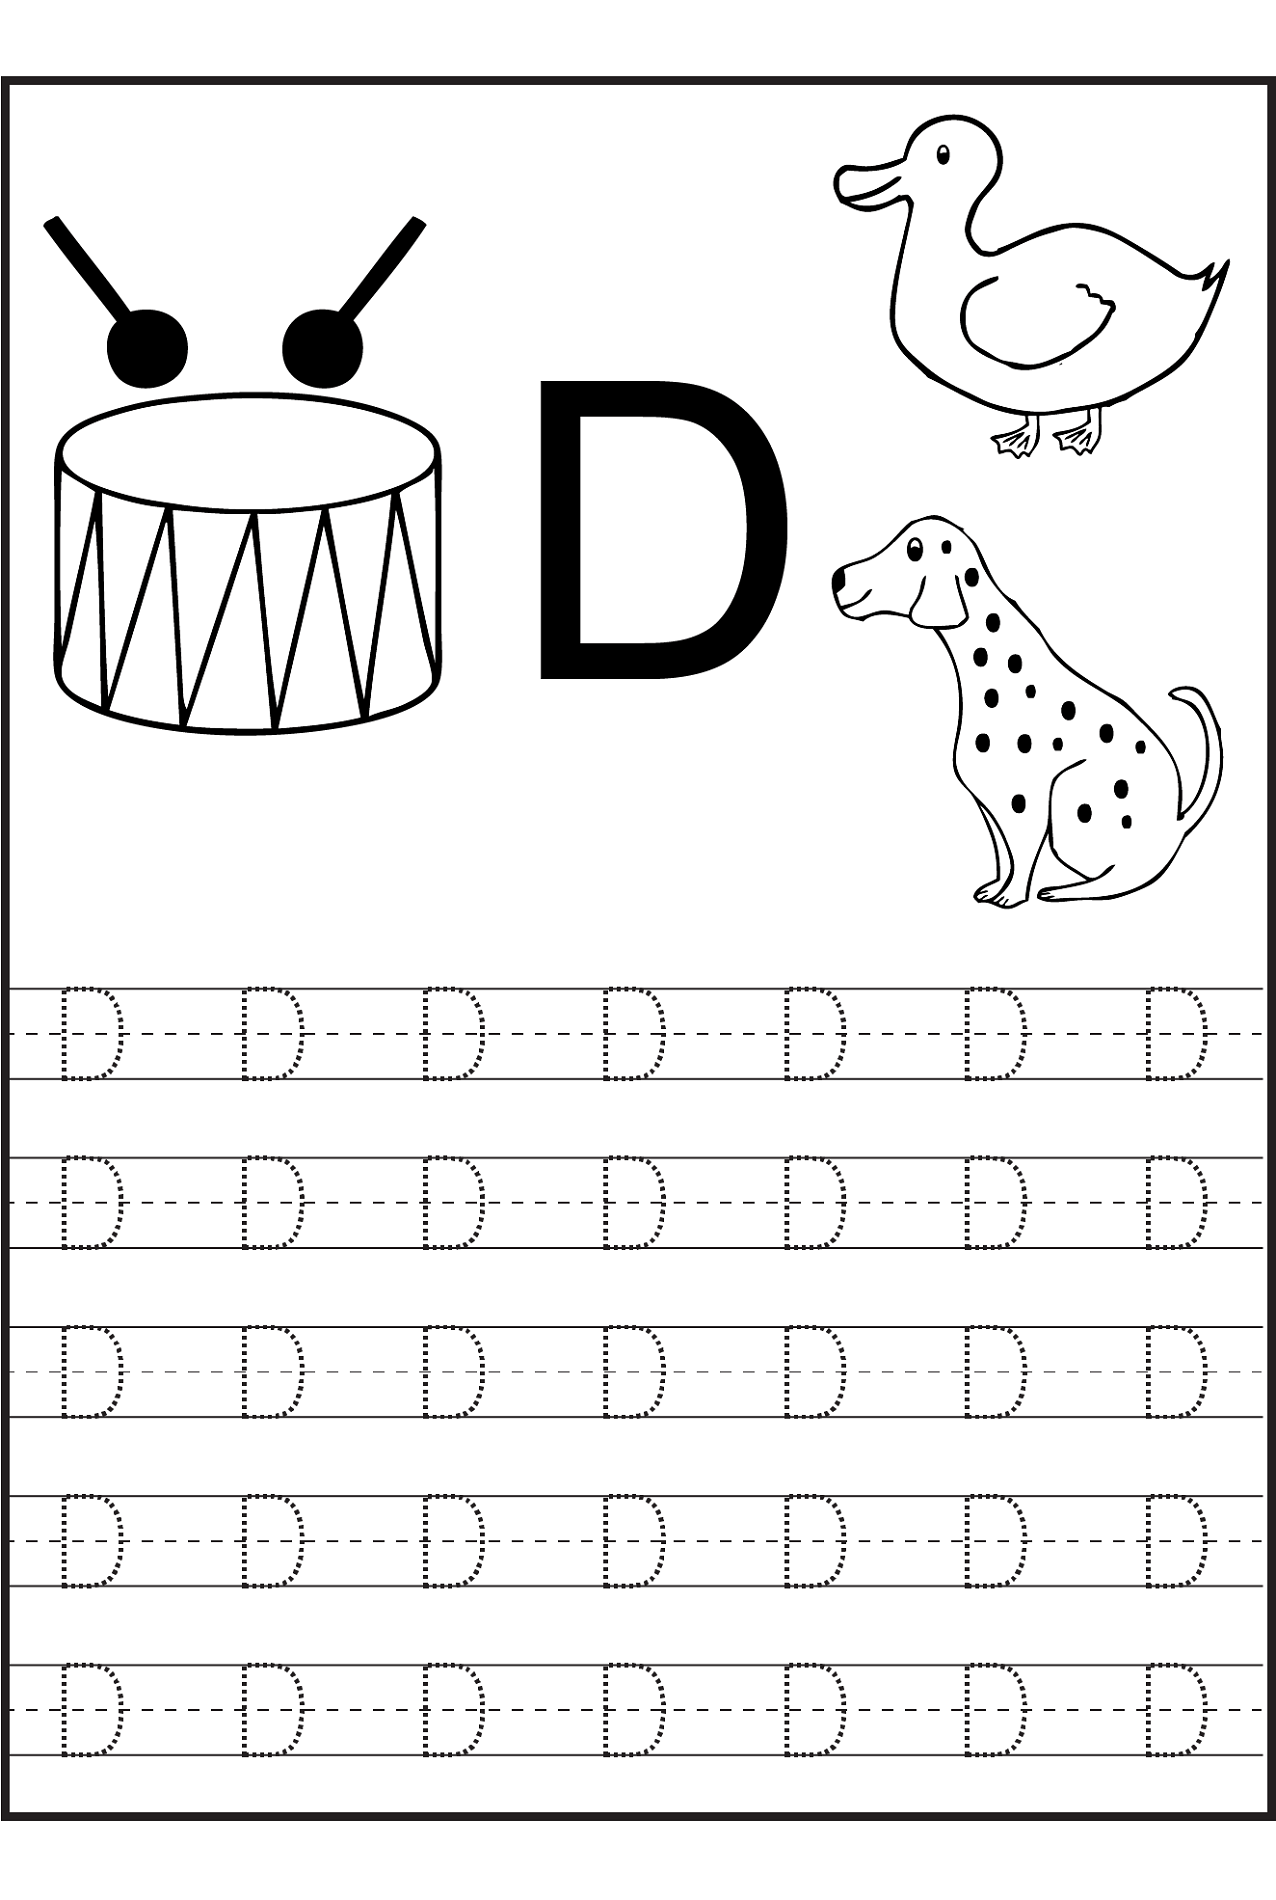 Preschool Alphabet Worksheets Activity Shelter Preschool Best Free Printable Worksheets